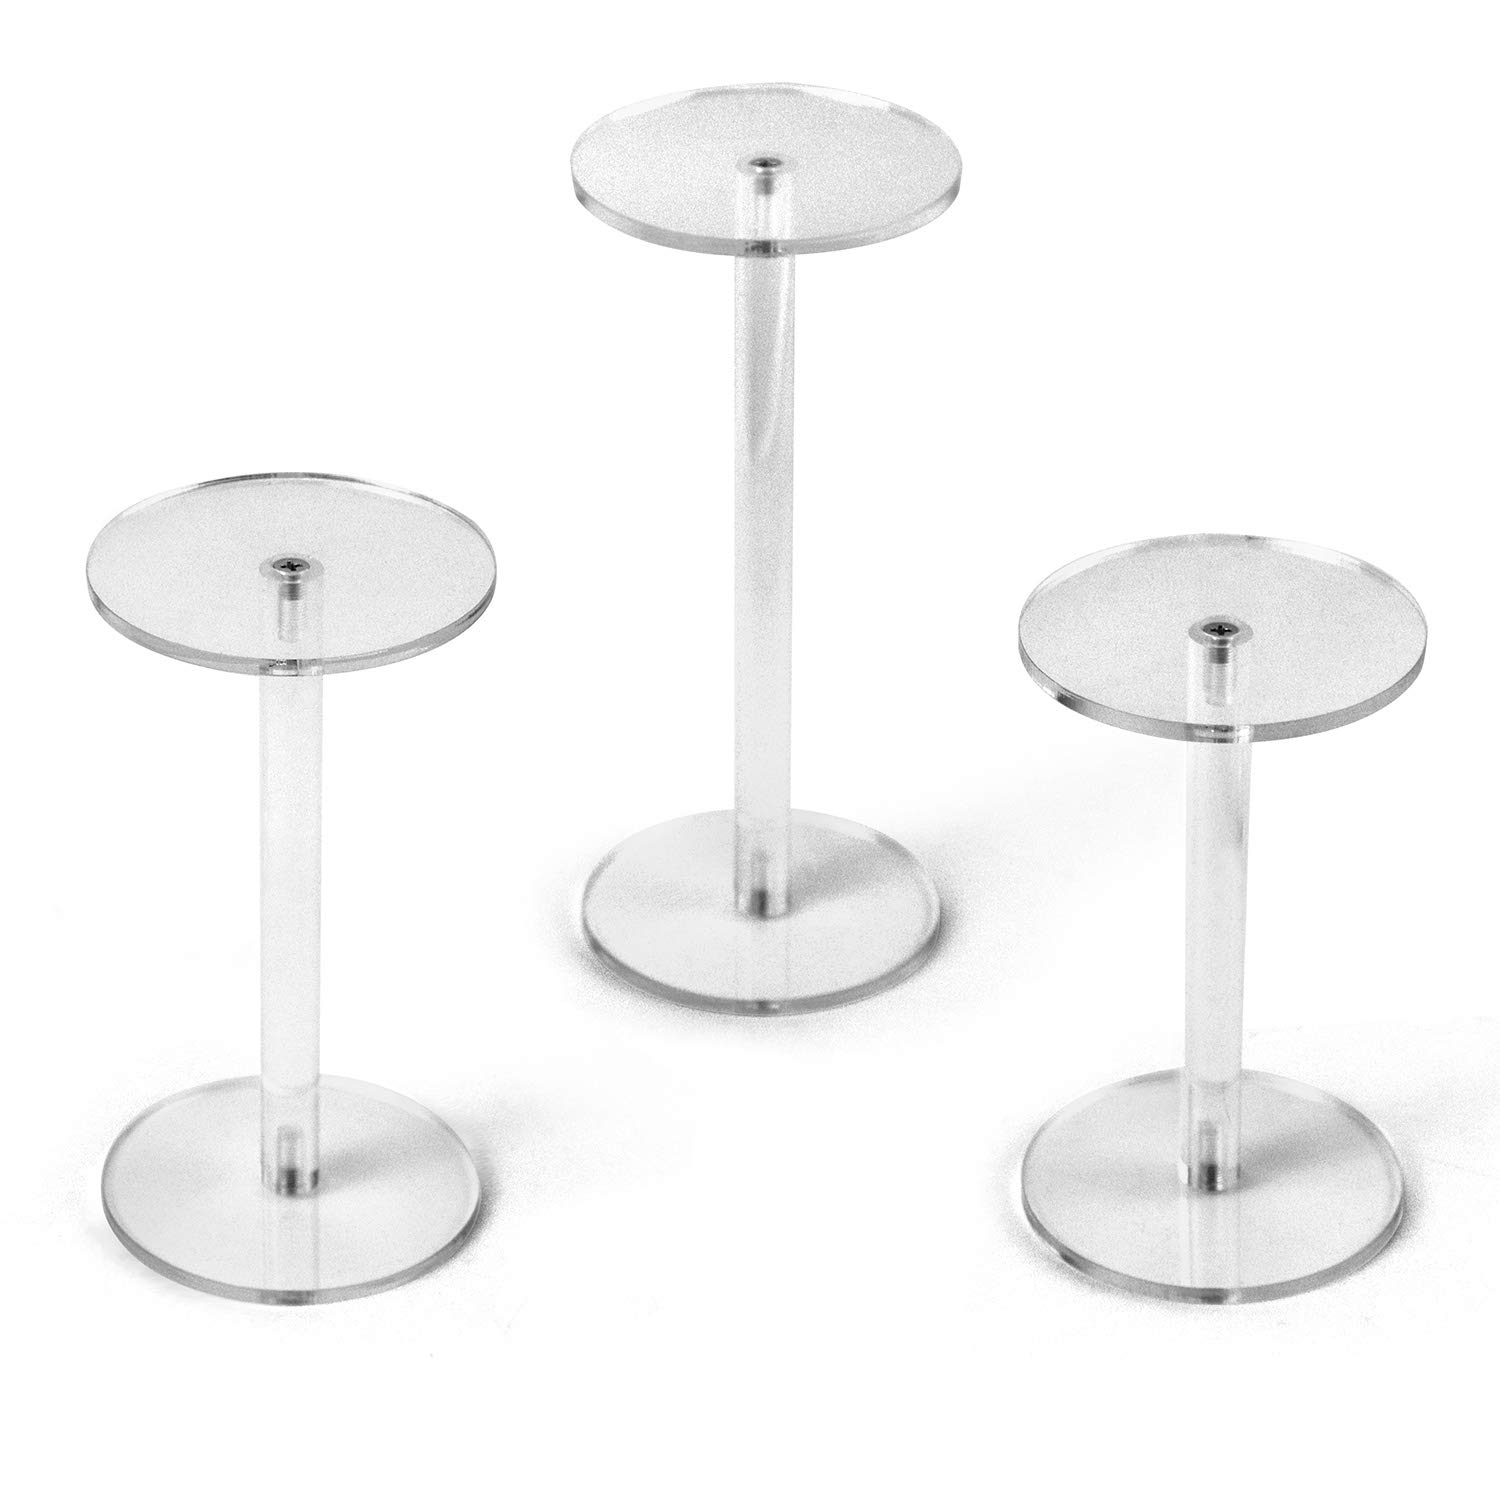 QWORK Round Acrylic Display Stand, Premium Clear Round Riser Stands, Set of 3